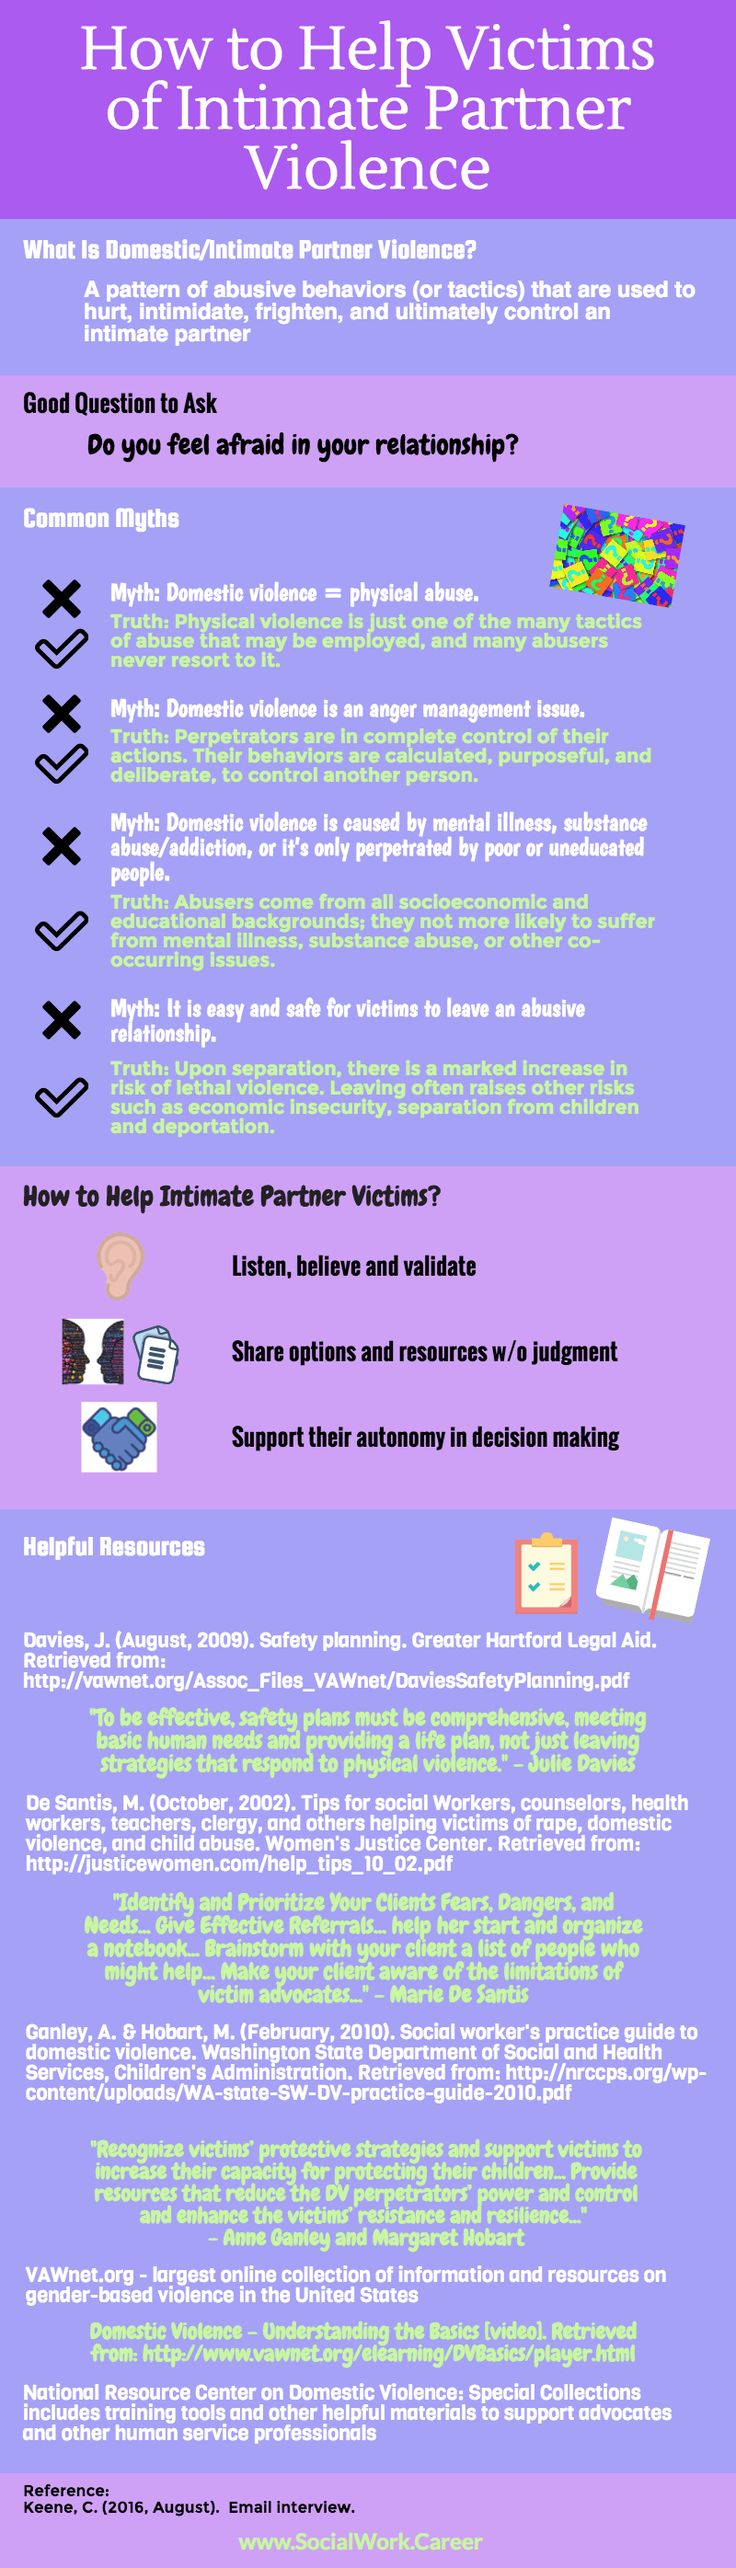 How to Help Victims of Intimate Partner/Domestic Violence < interview w/Casey Keene from National Resource Center on Domestic Violence